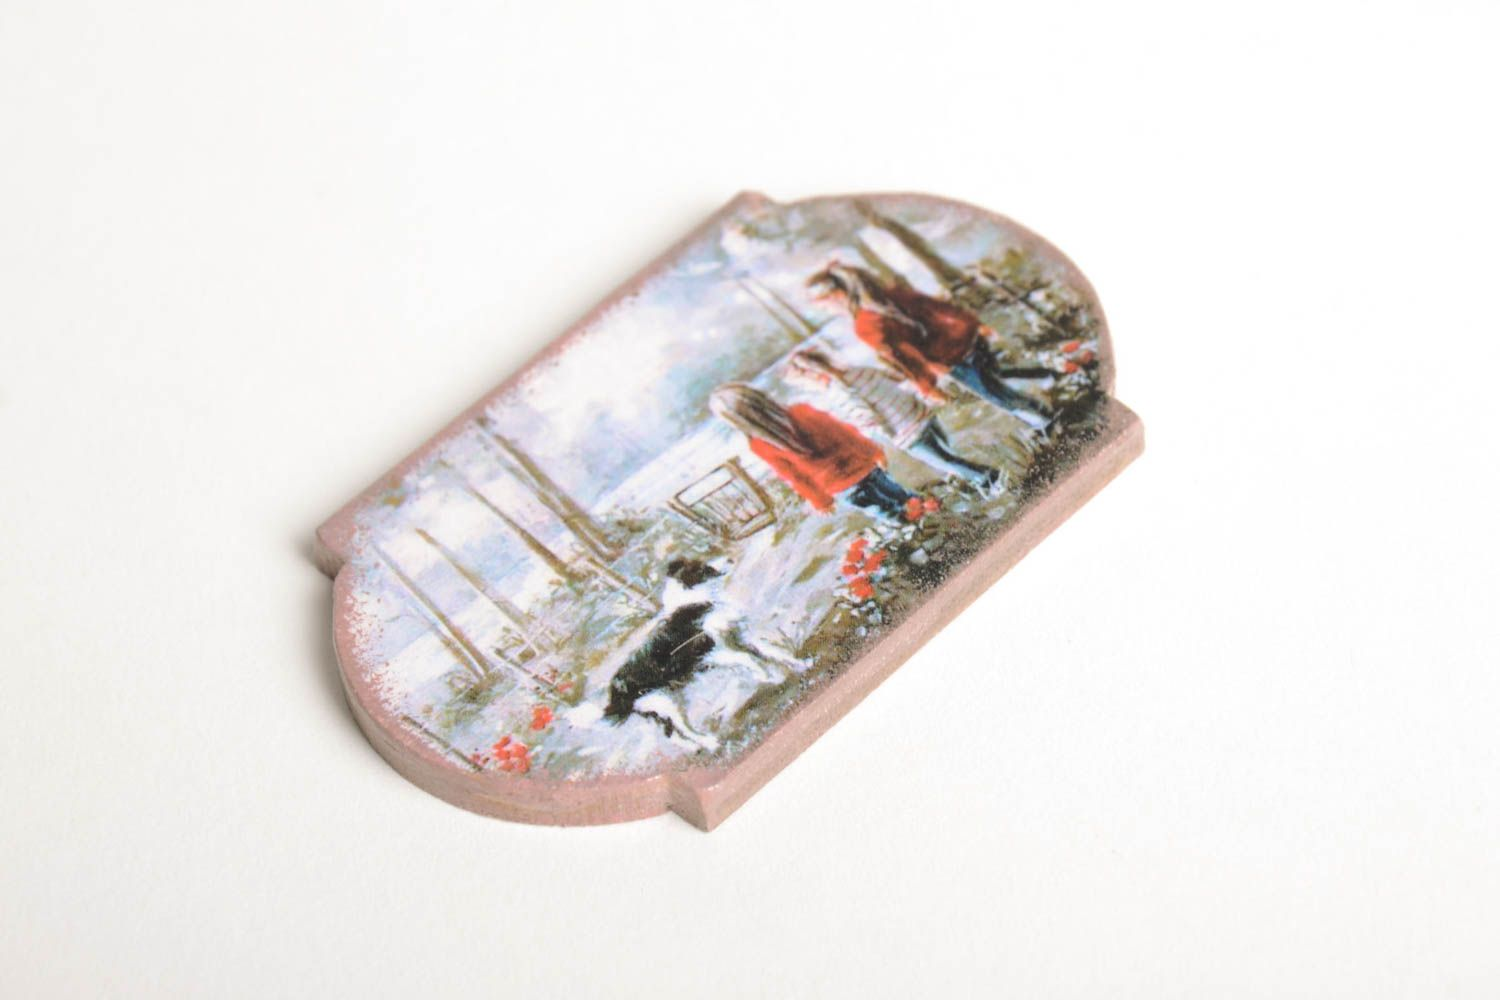 Unusual handmade magnet kitchen supplies decoupage ideas decorative use only photo 5